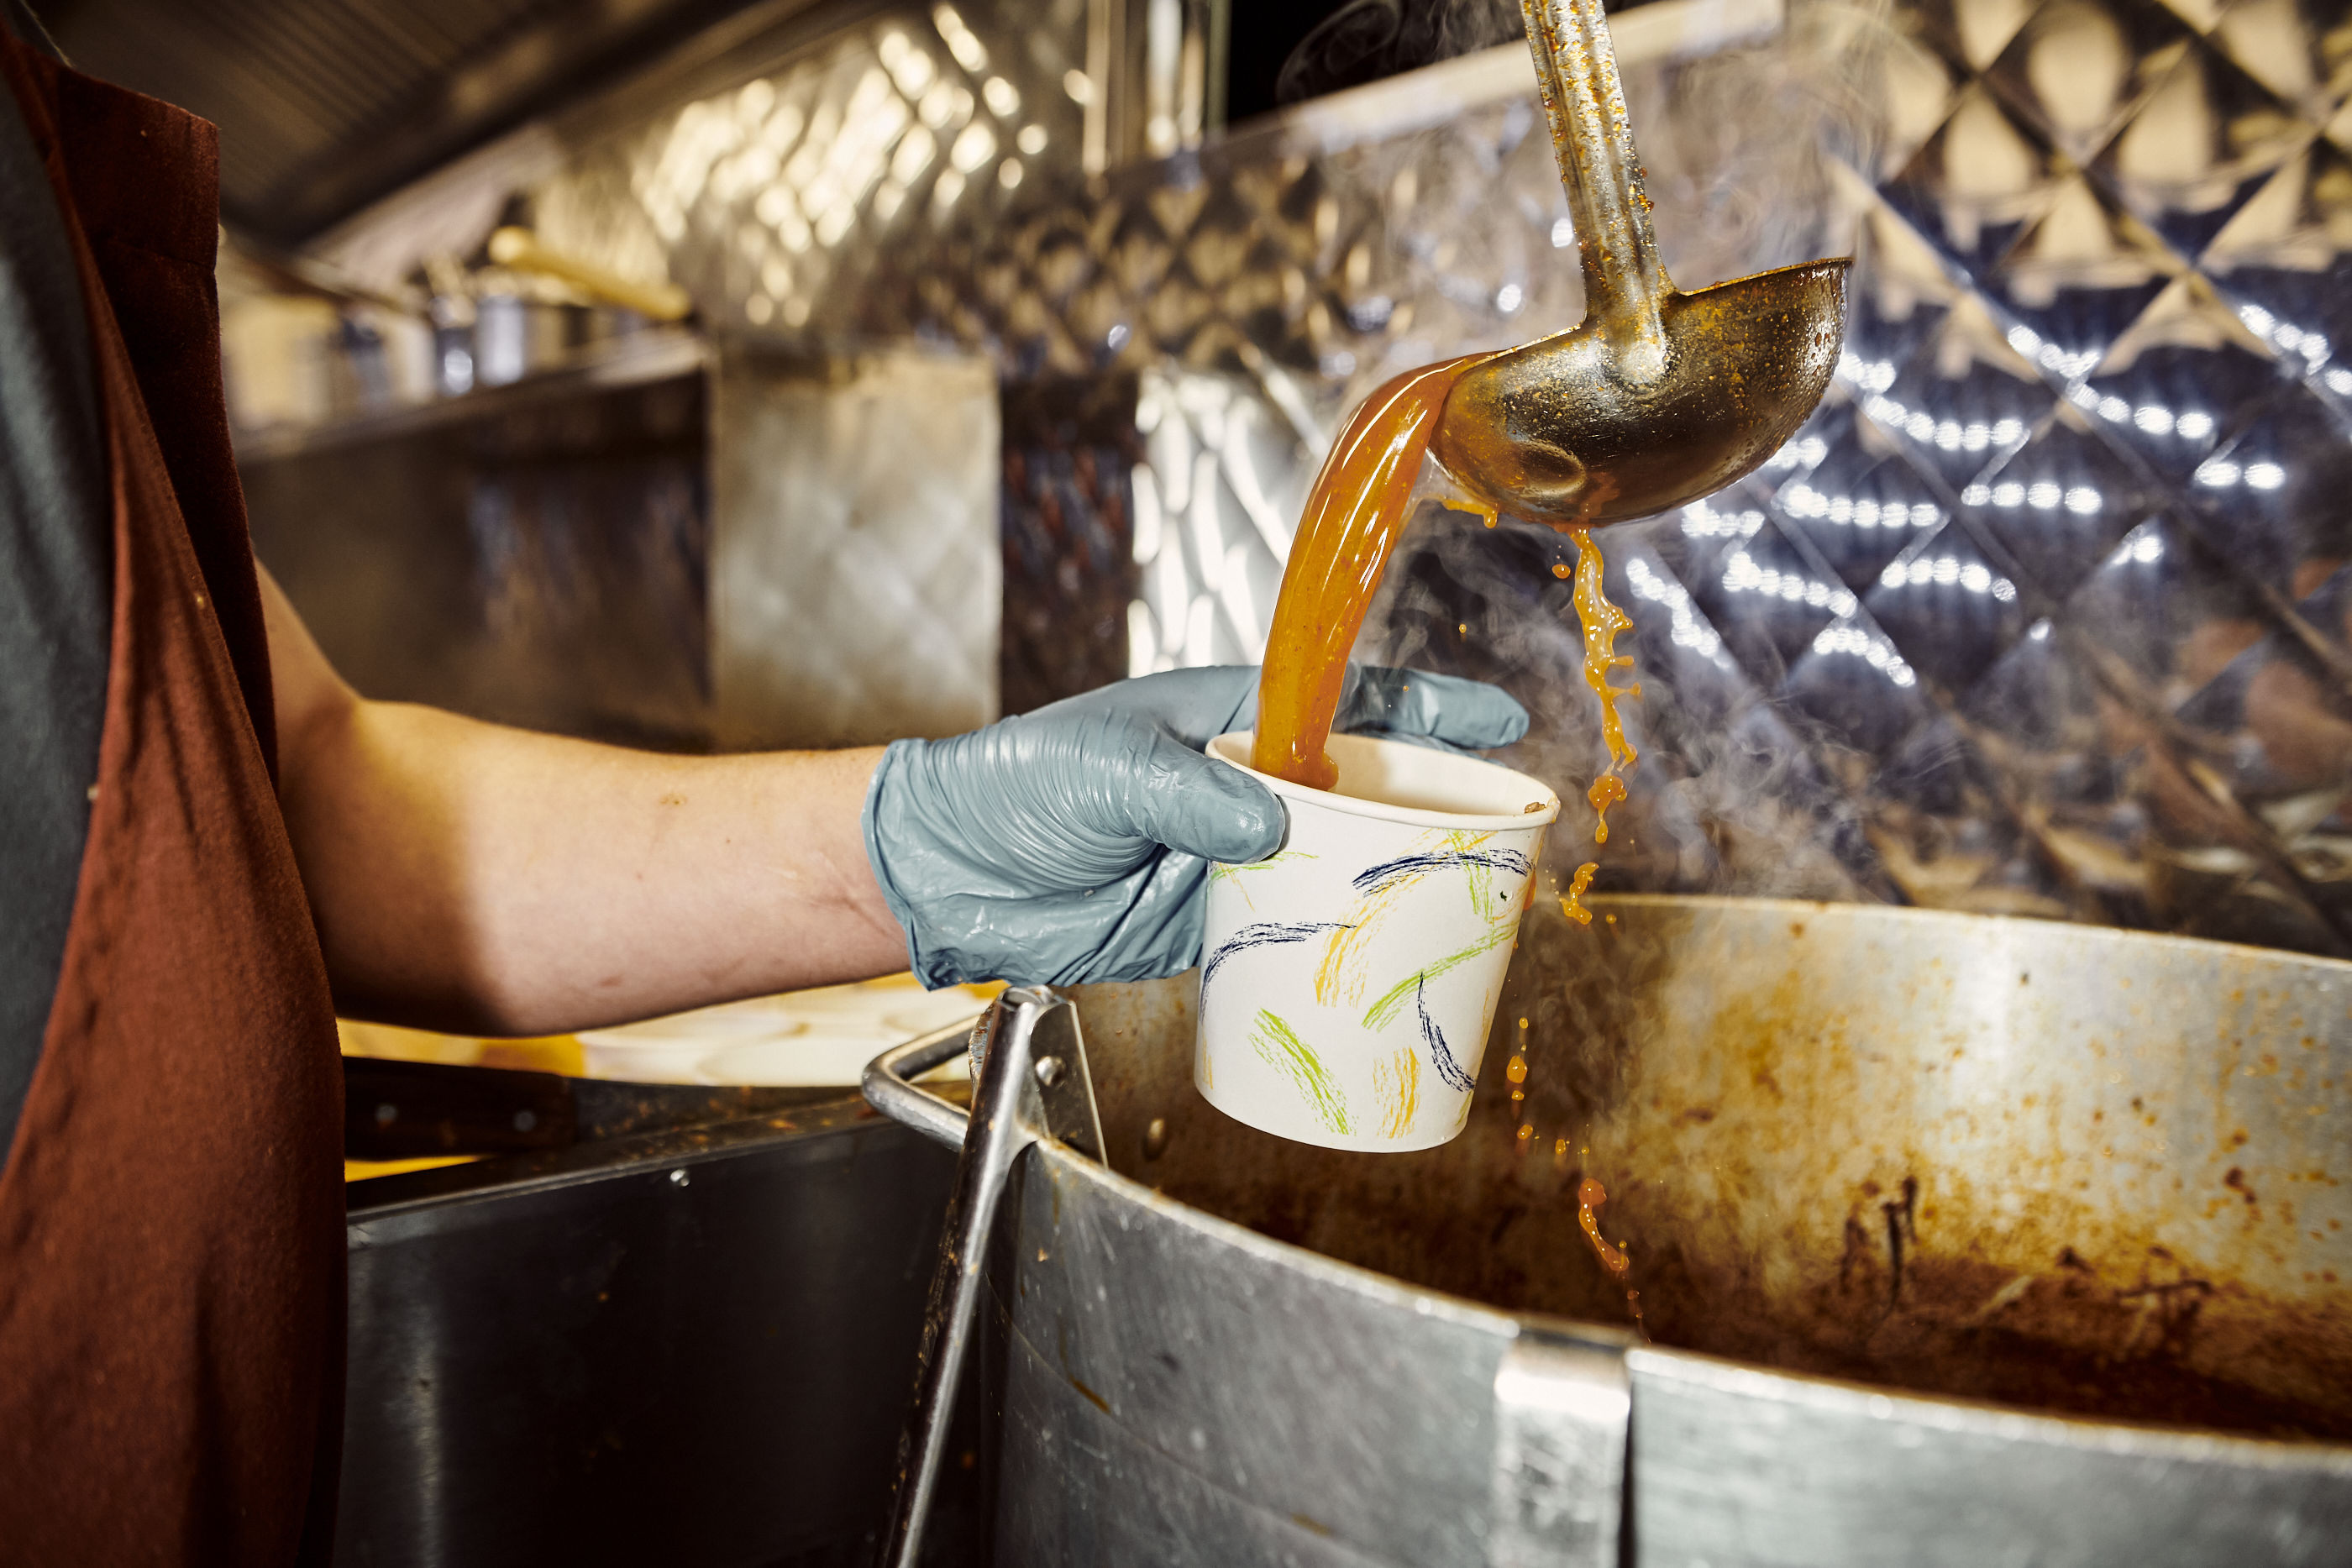 A chef ladles a scoop of orange consomme into a takeout cup held by a hand wearing a mint-colored glove